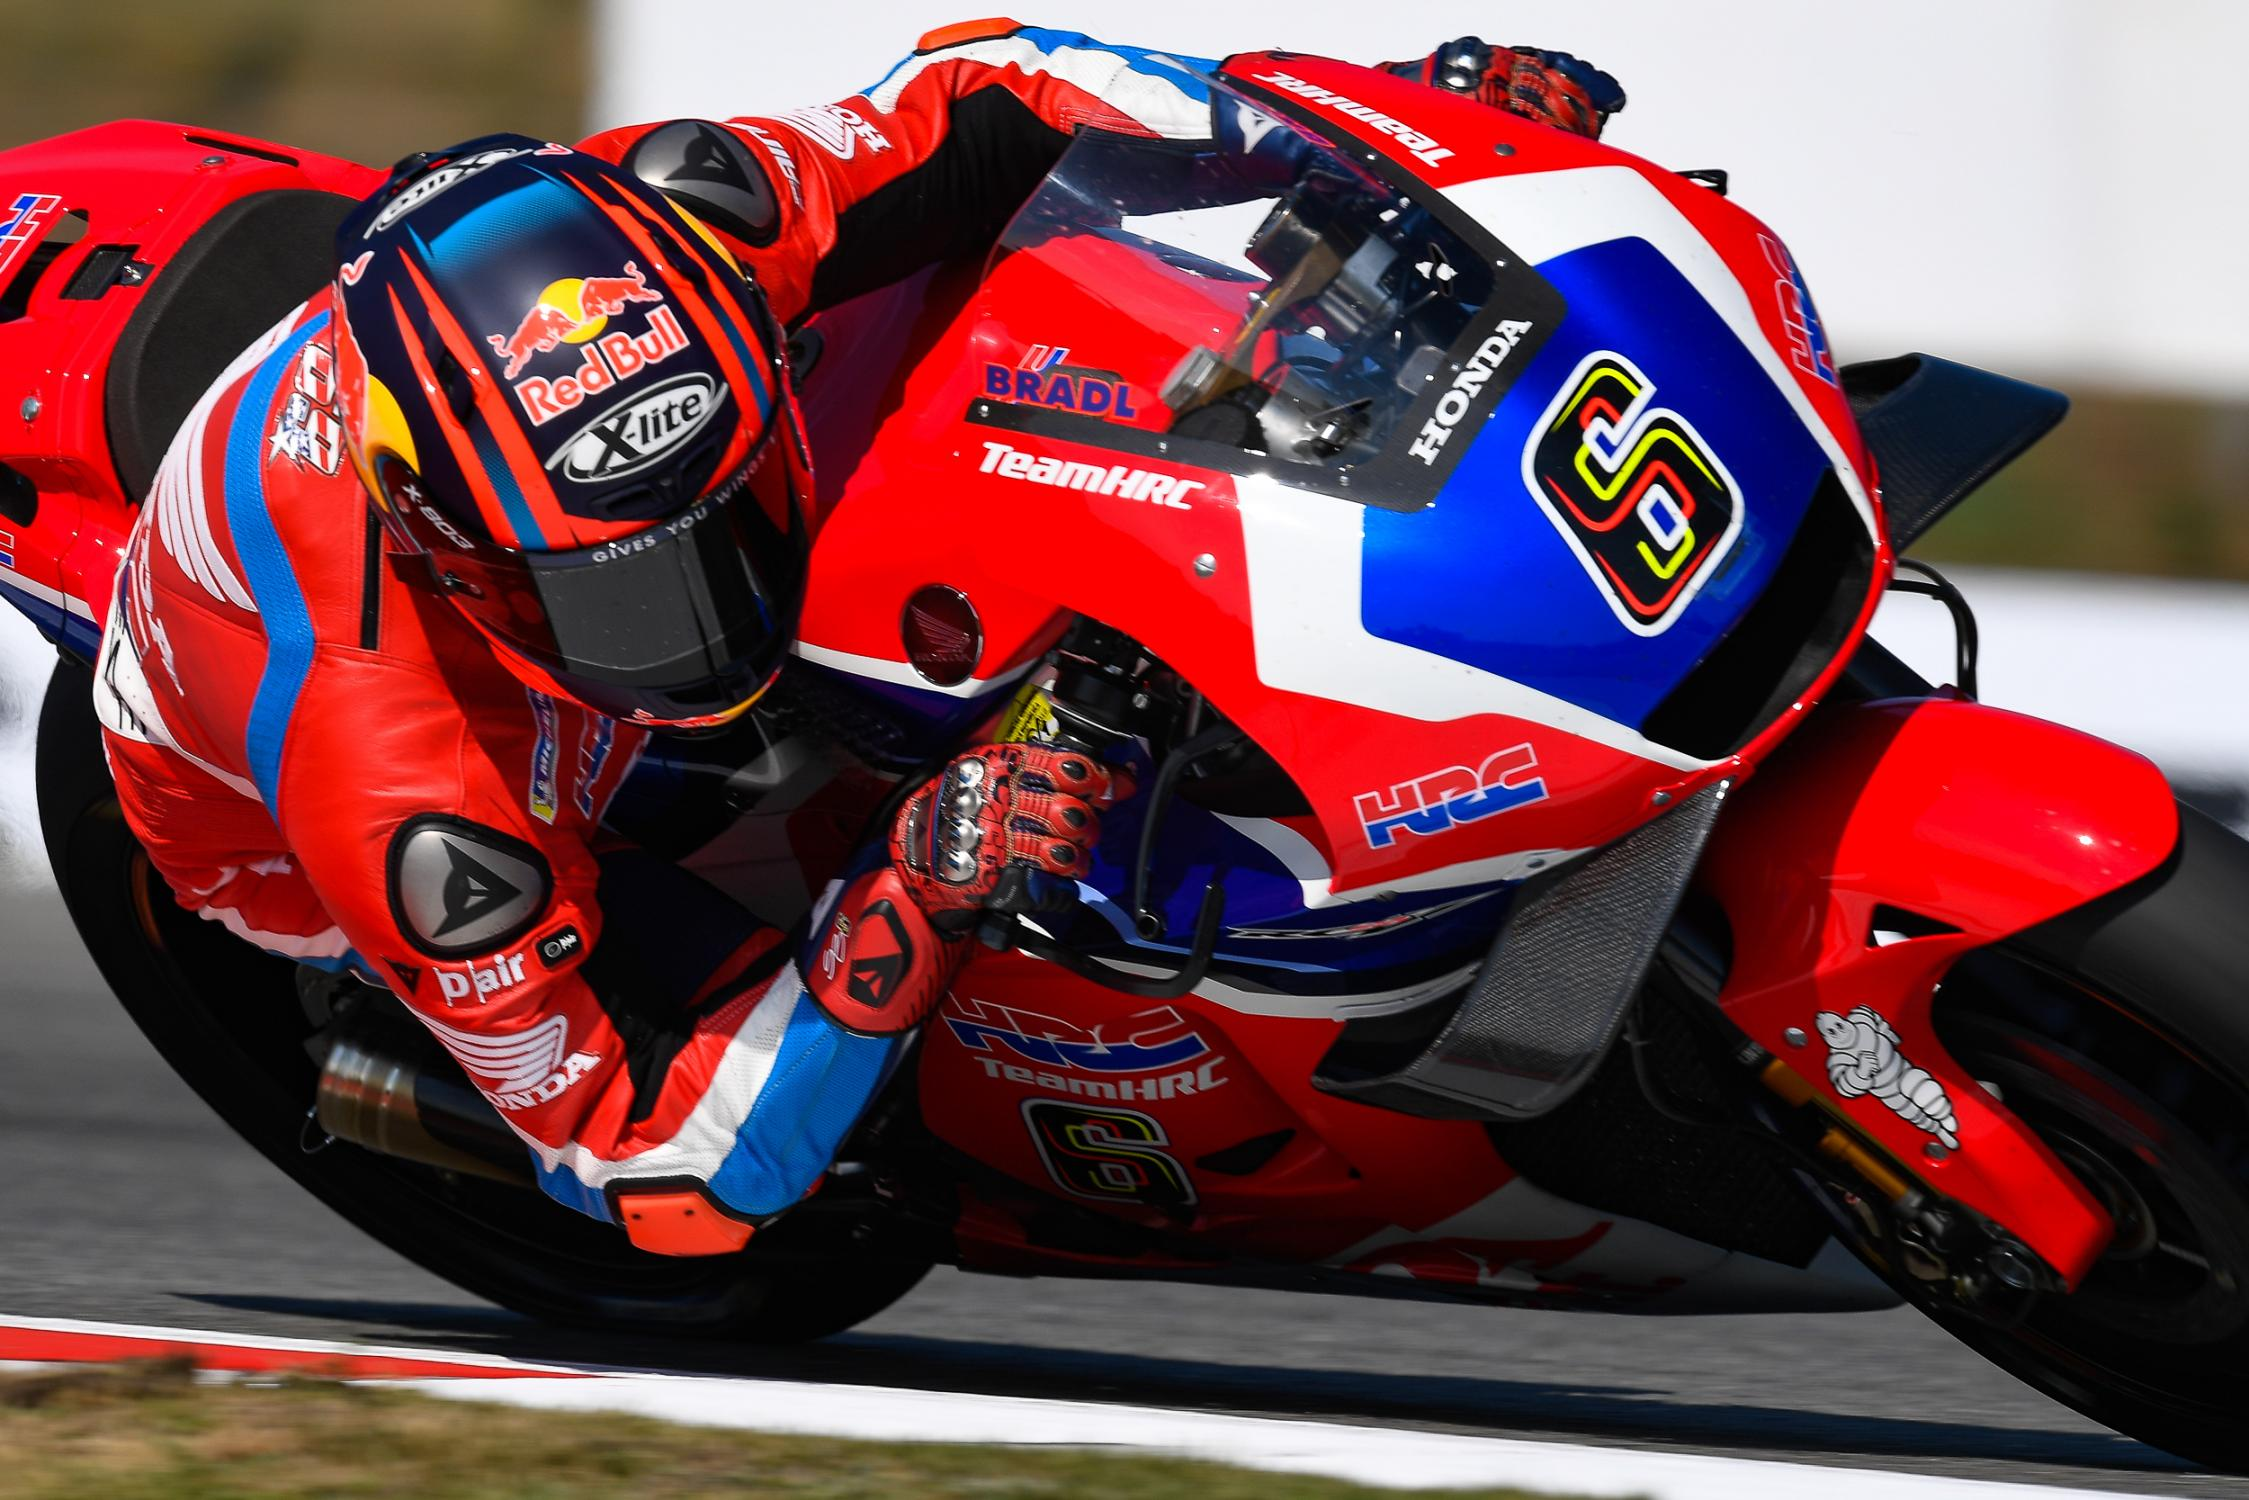 06-stephan-bradl_ds51908.gallery_full_top_fullscreen.jpg